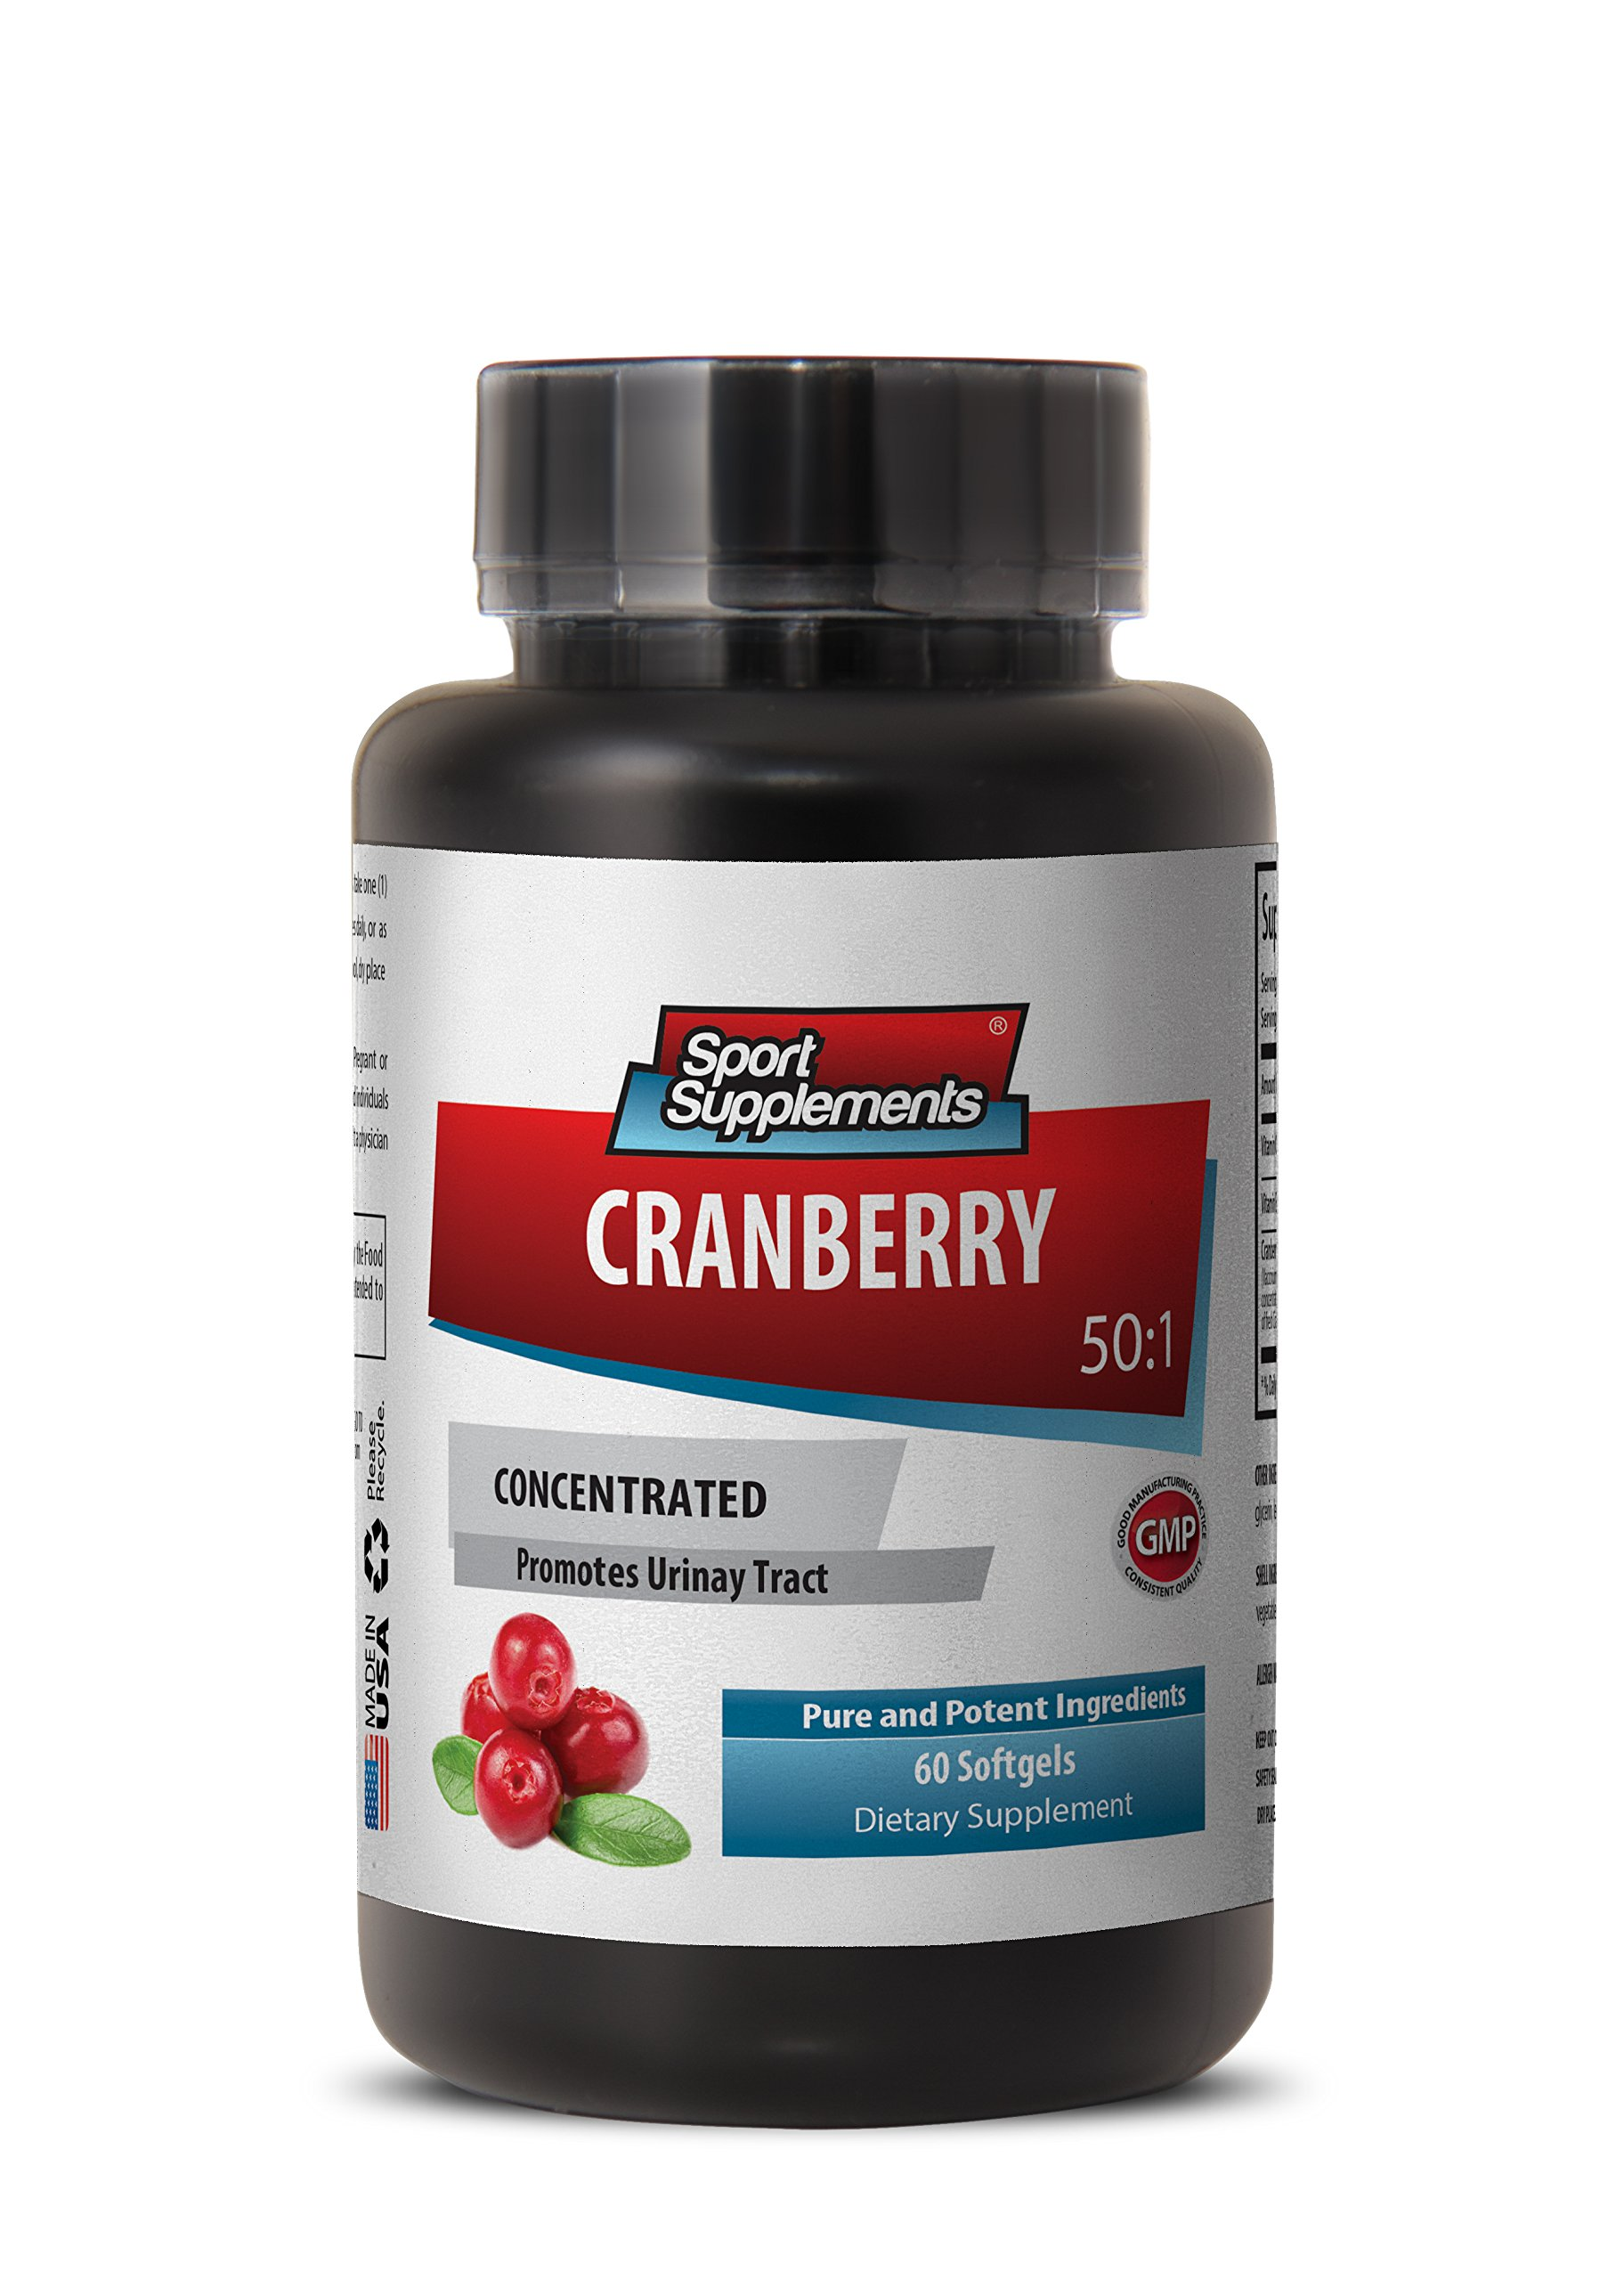 Cranberry softgels for women - CRANBERRY CONCENTRATED 252Mg with Vitamins C and E - Heart health vitamins - 60 softgels